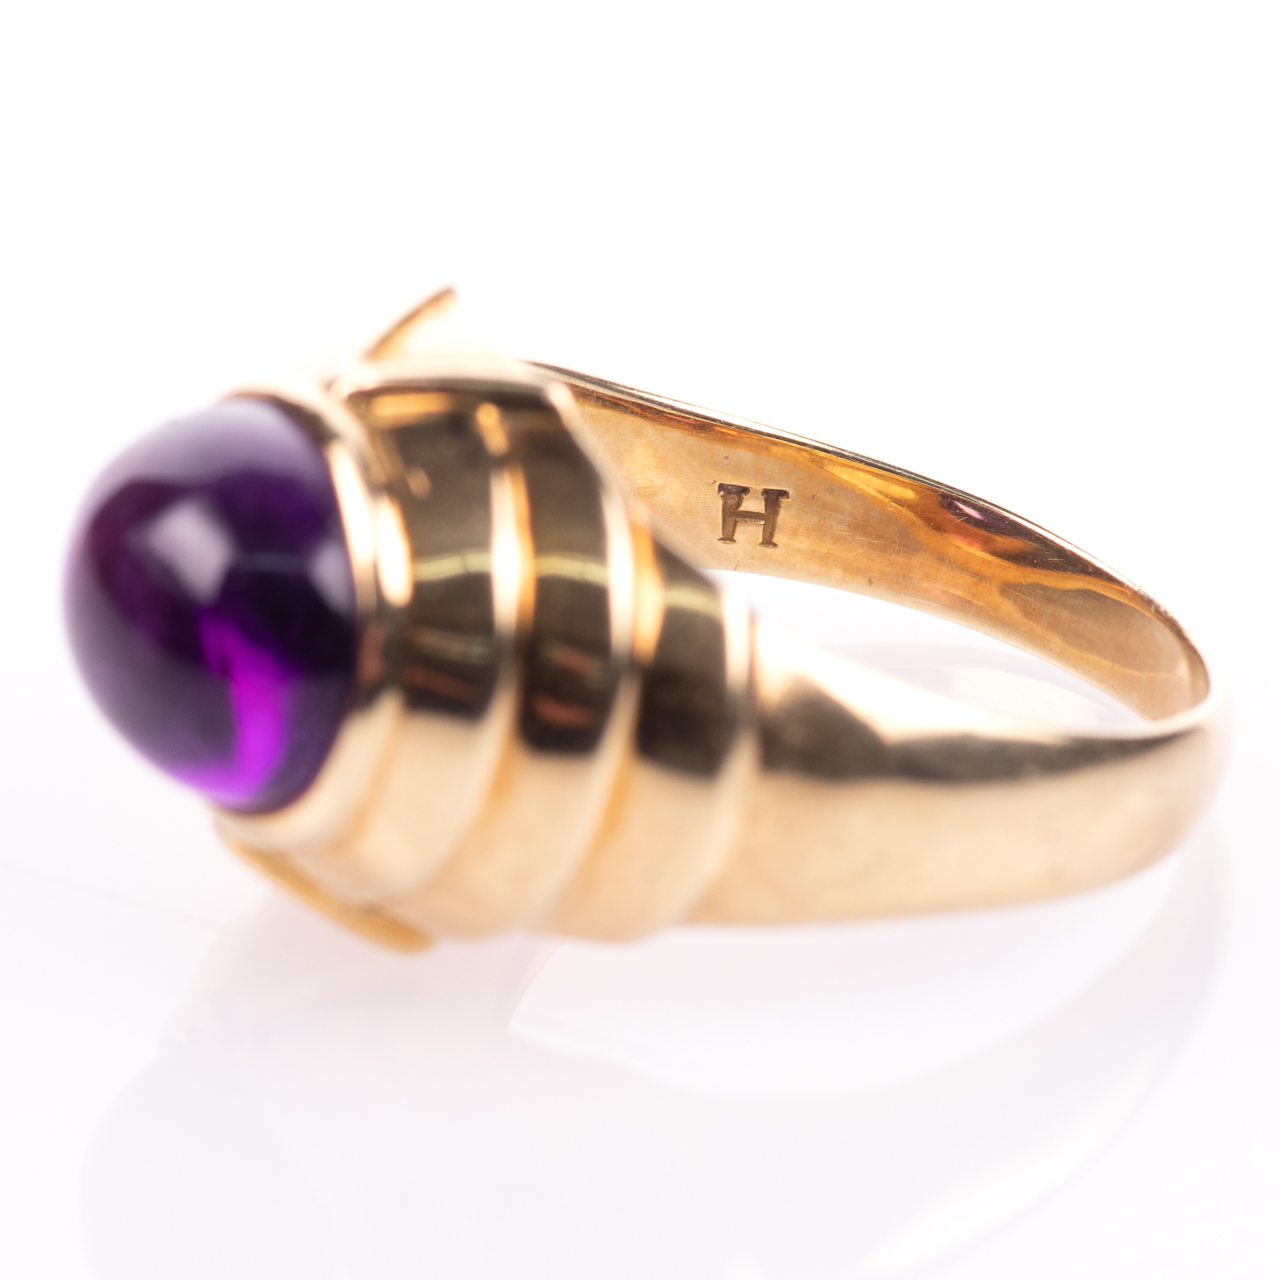 14ct Gold Amethyst Cabochon Ring Egyptian Revival Style - Image 5 of 9